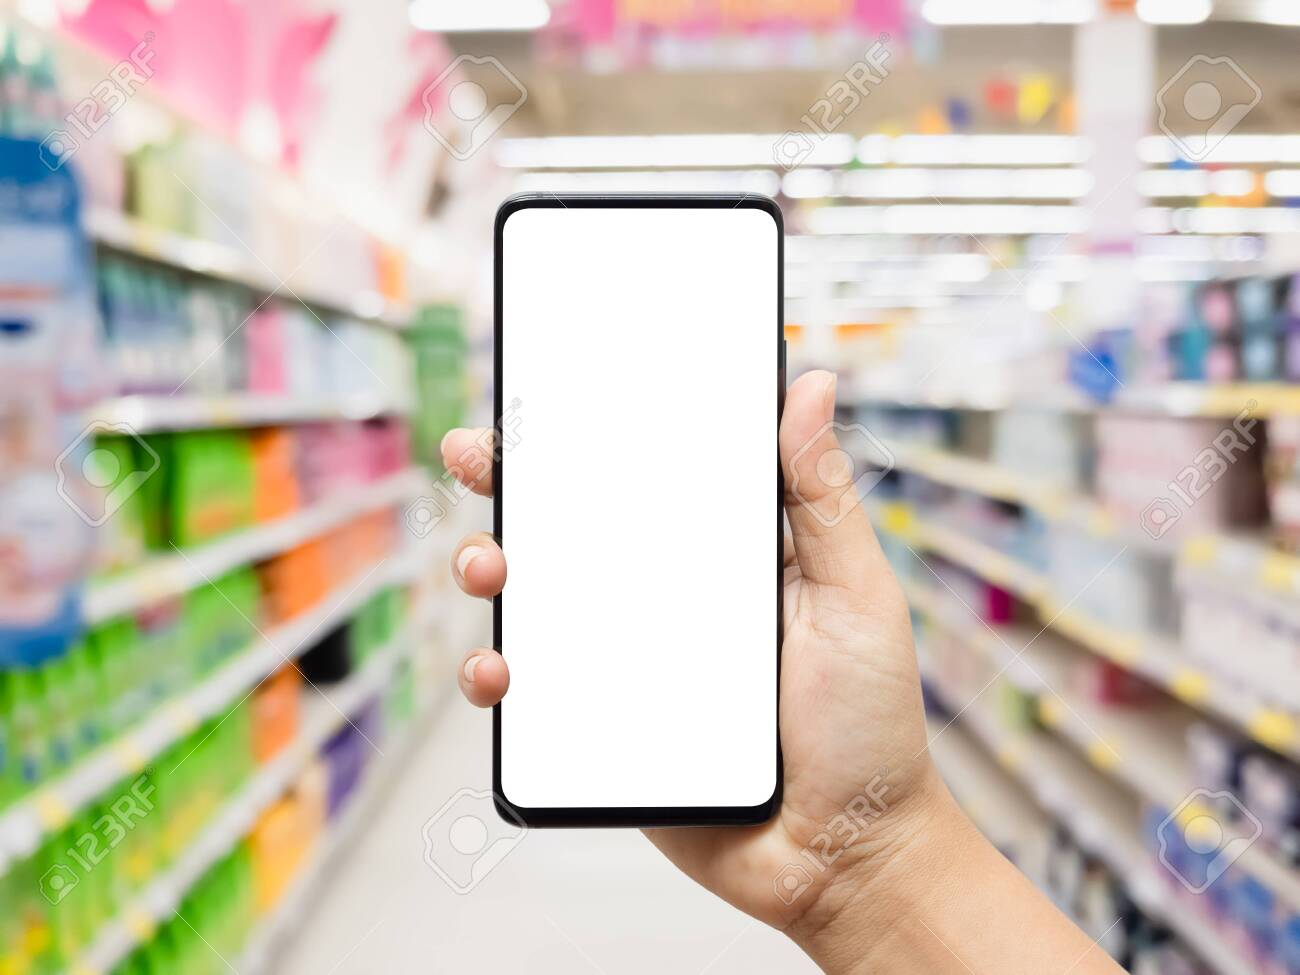 Hand holding smartphone with blurred supermarket - 147019938